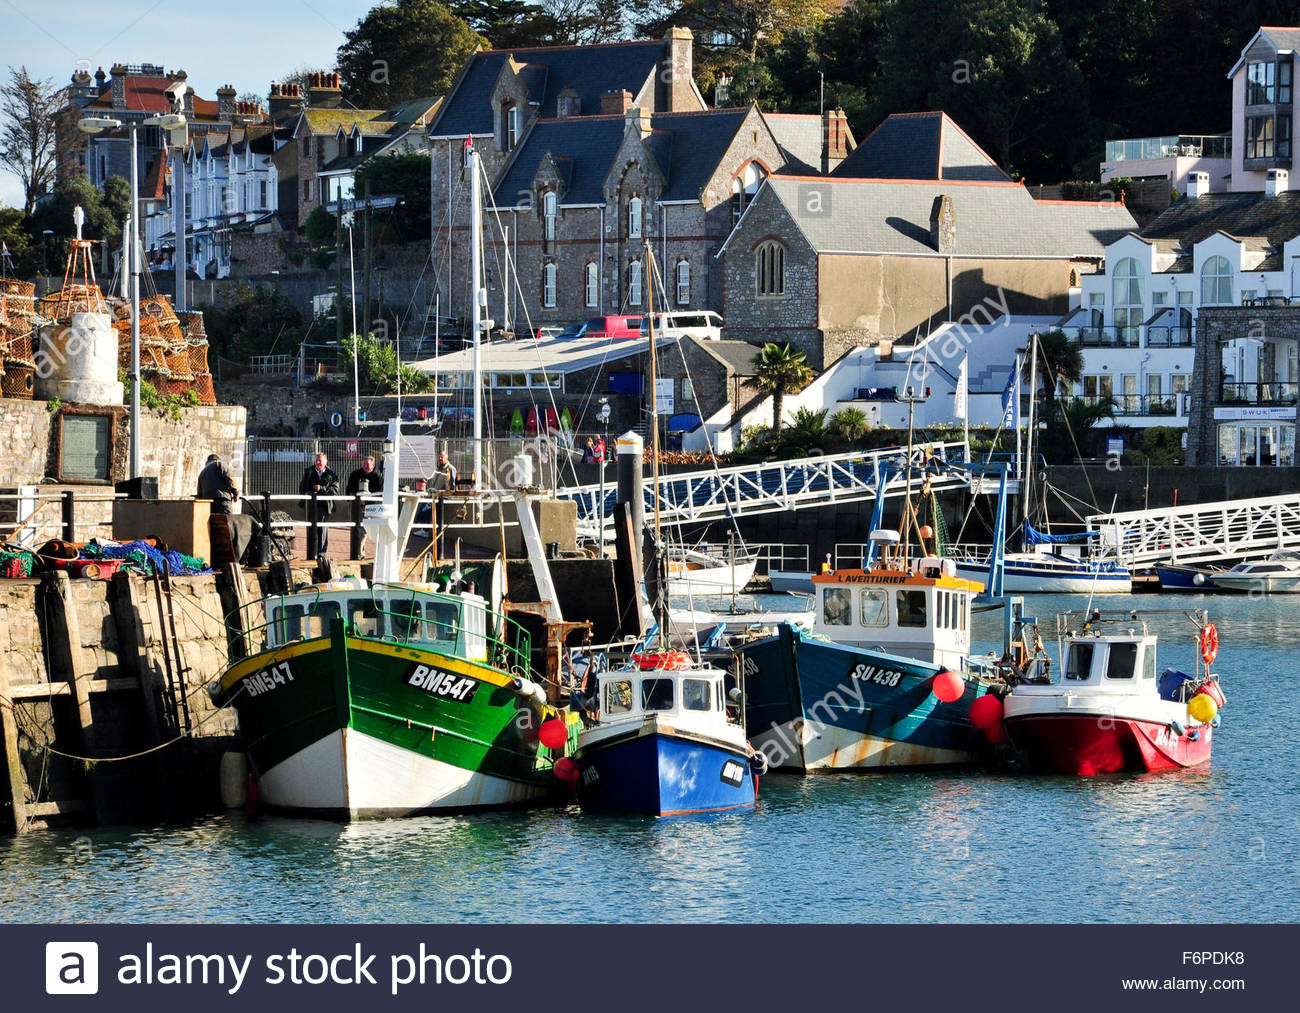 Fishing boats lined up in Brixham Harbour, Torbay, Devon - Stock Image